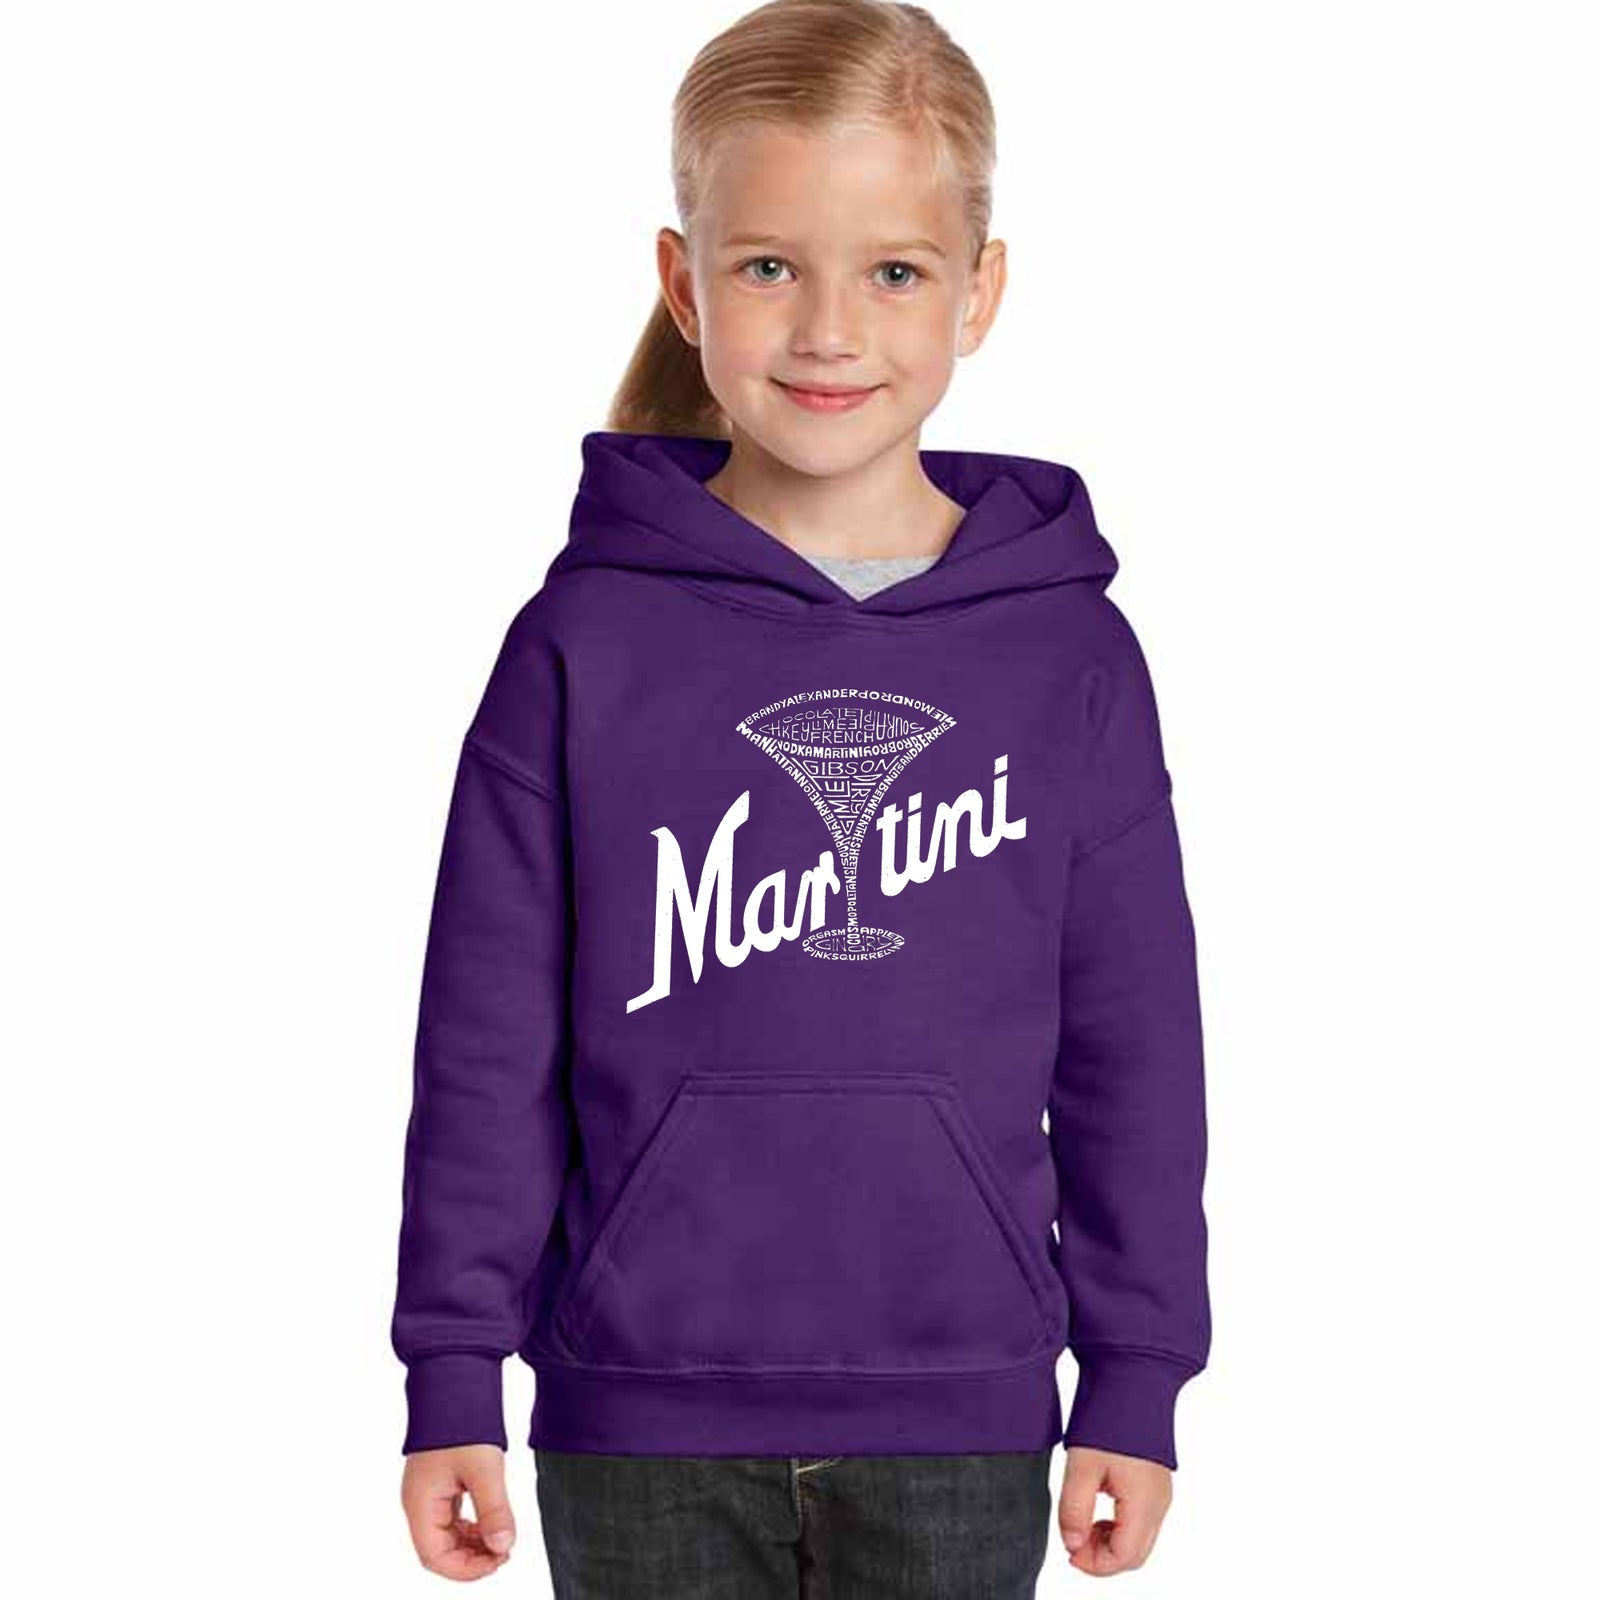 Girl's Hooded Sweatshirt - Martini